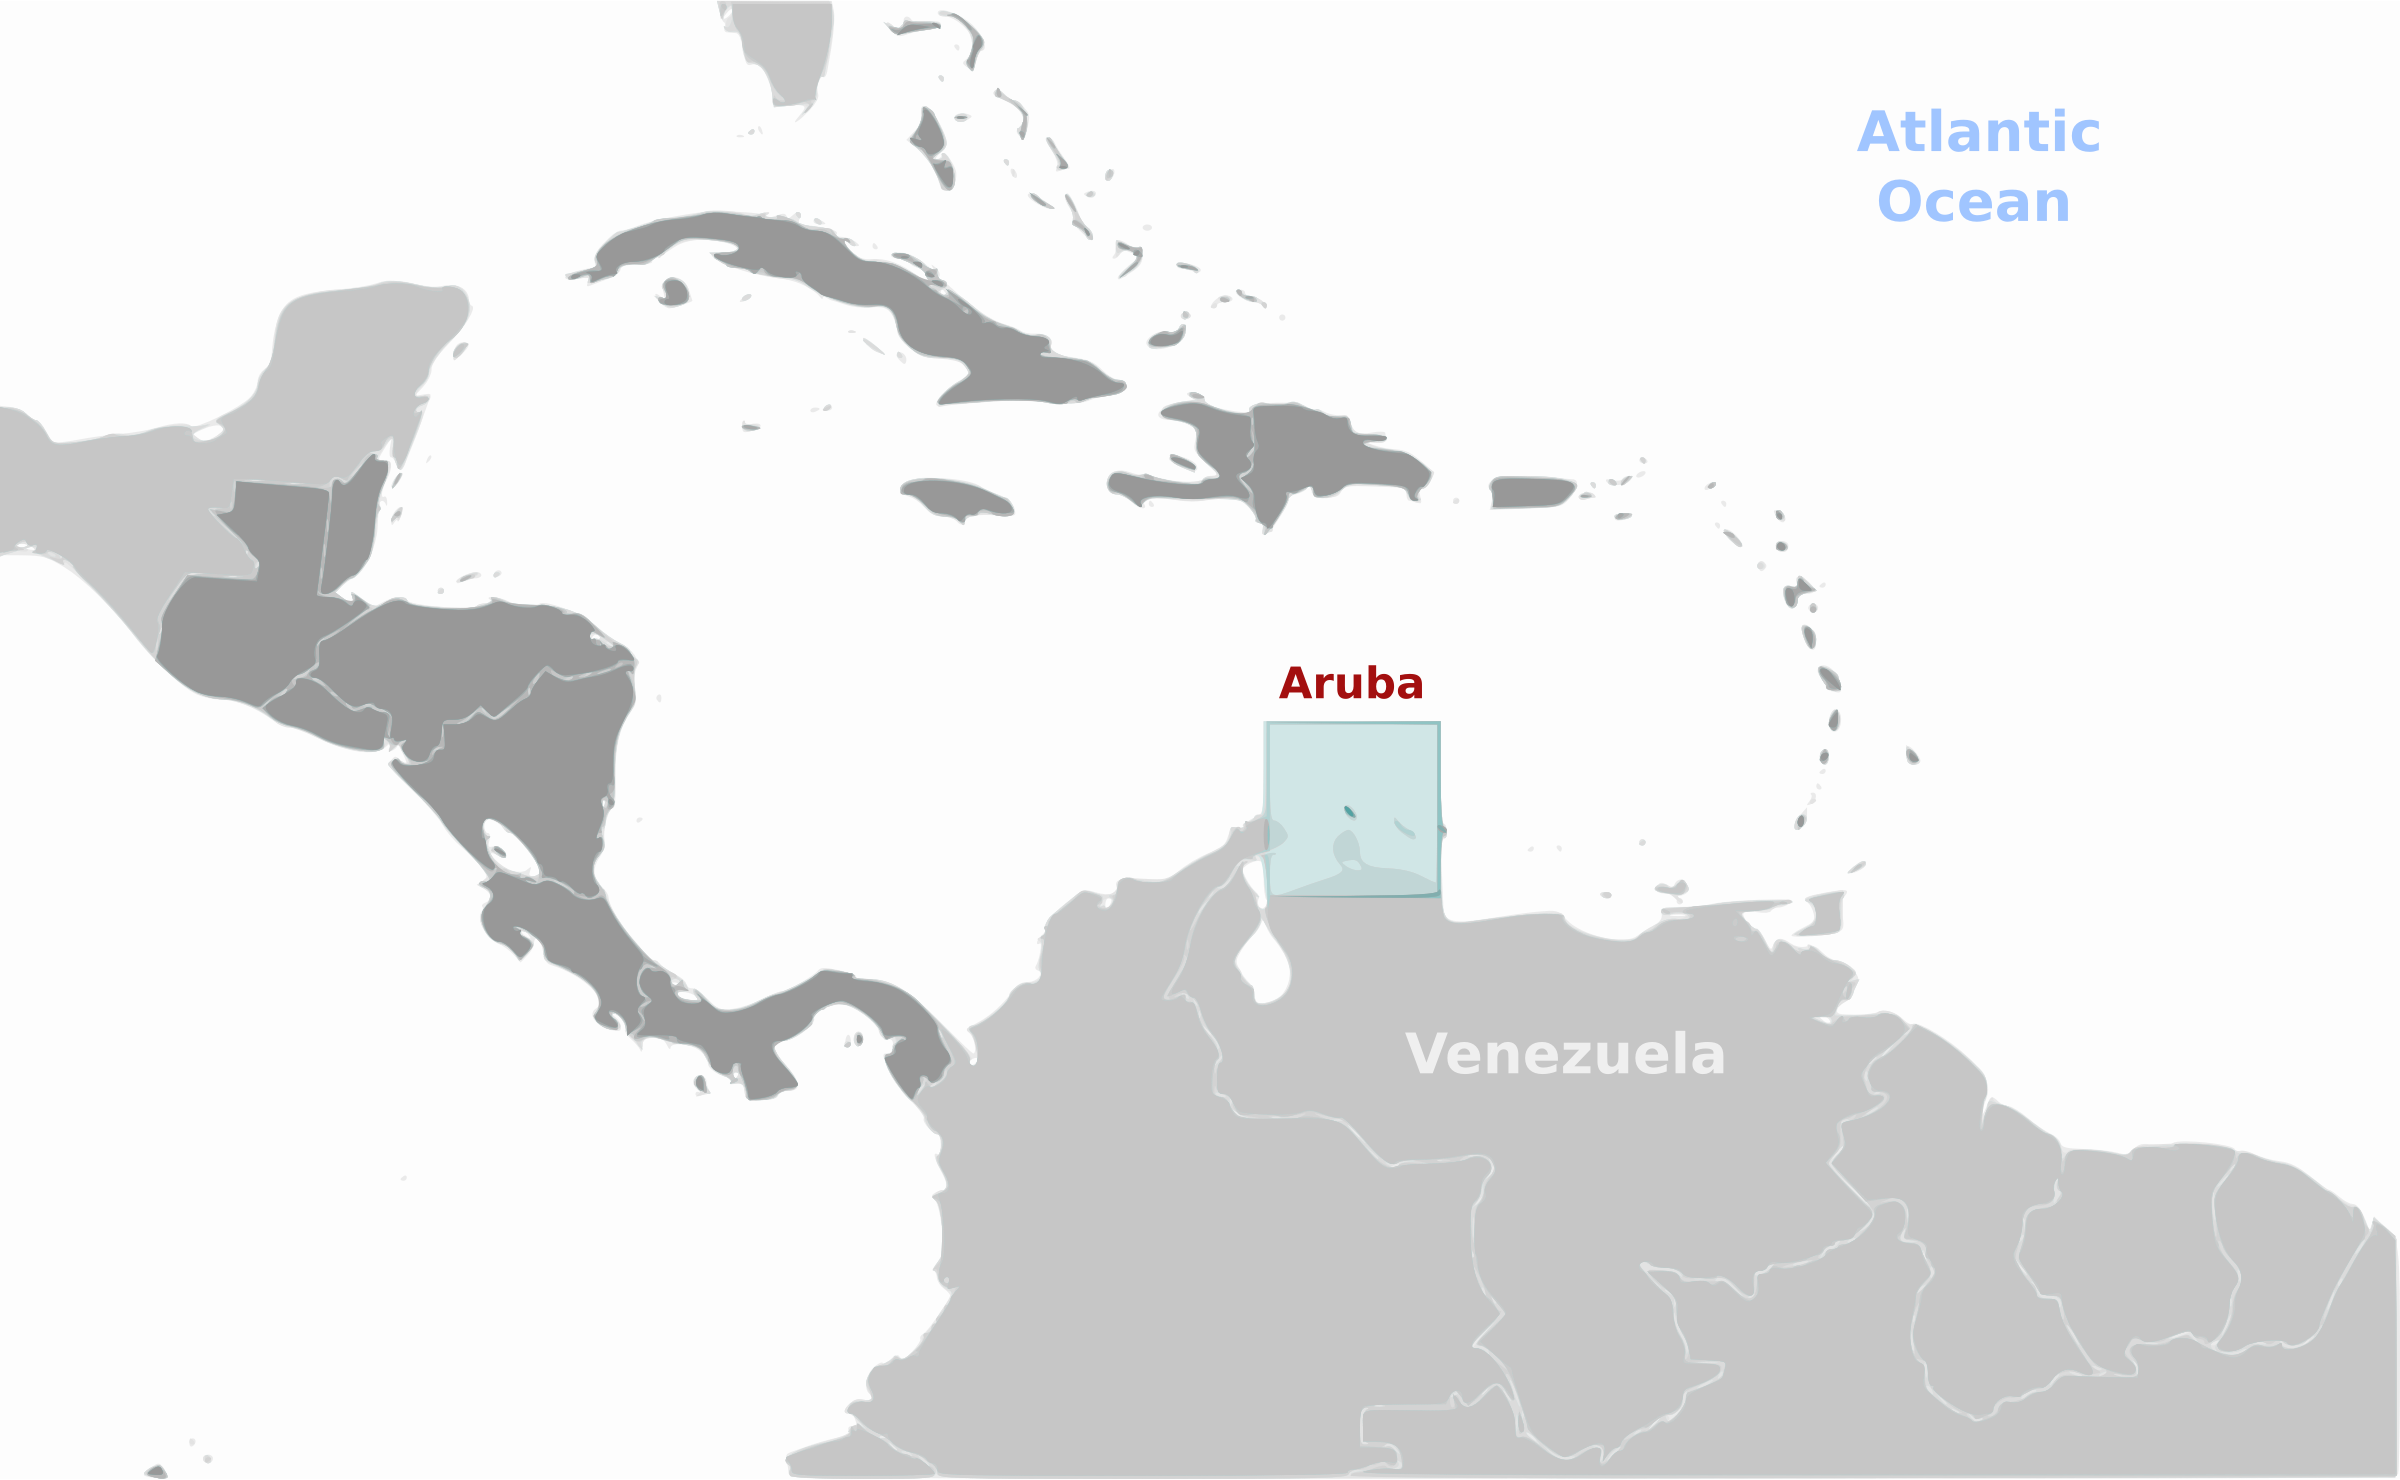 Aruba location label by wpclipart